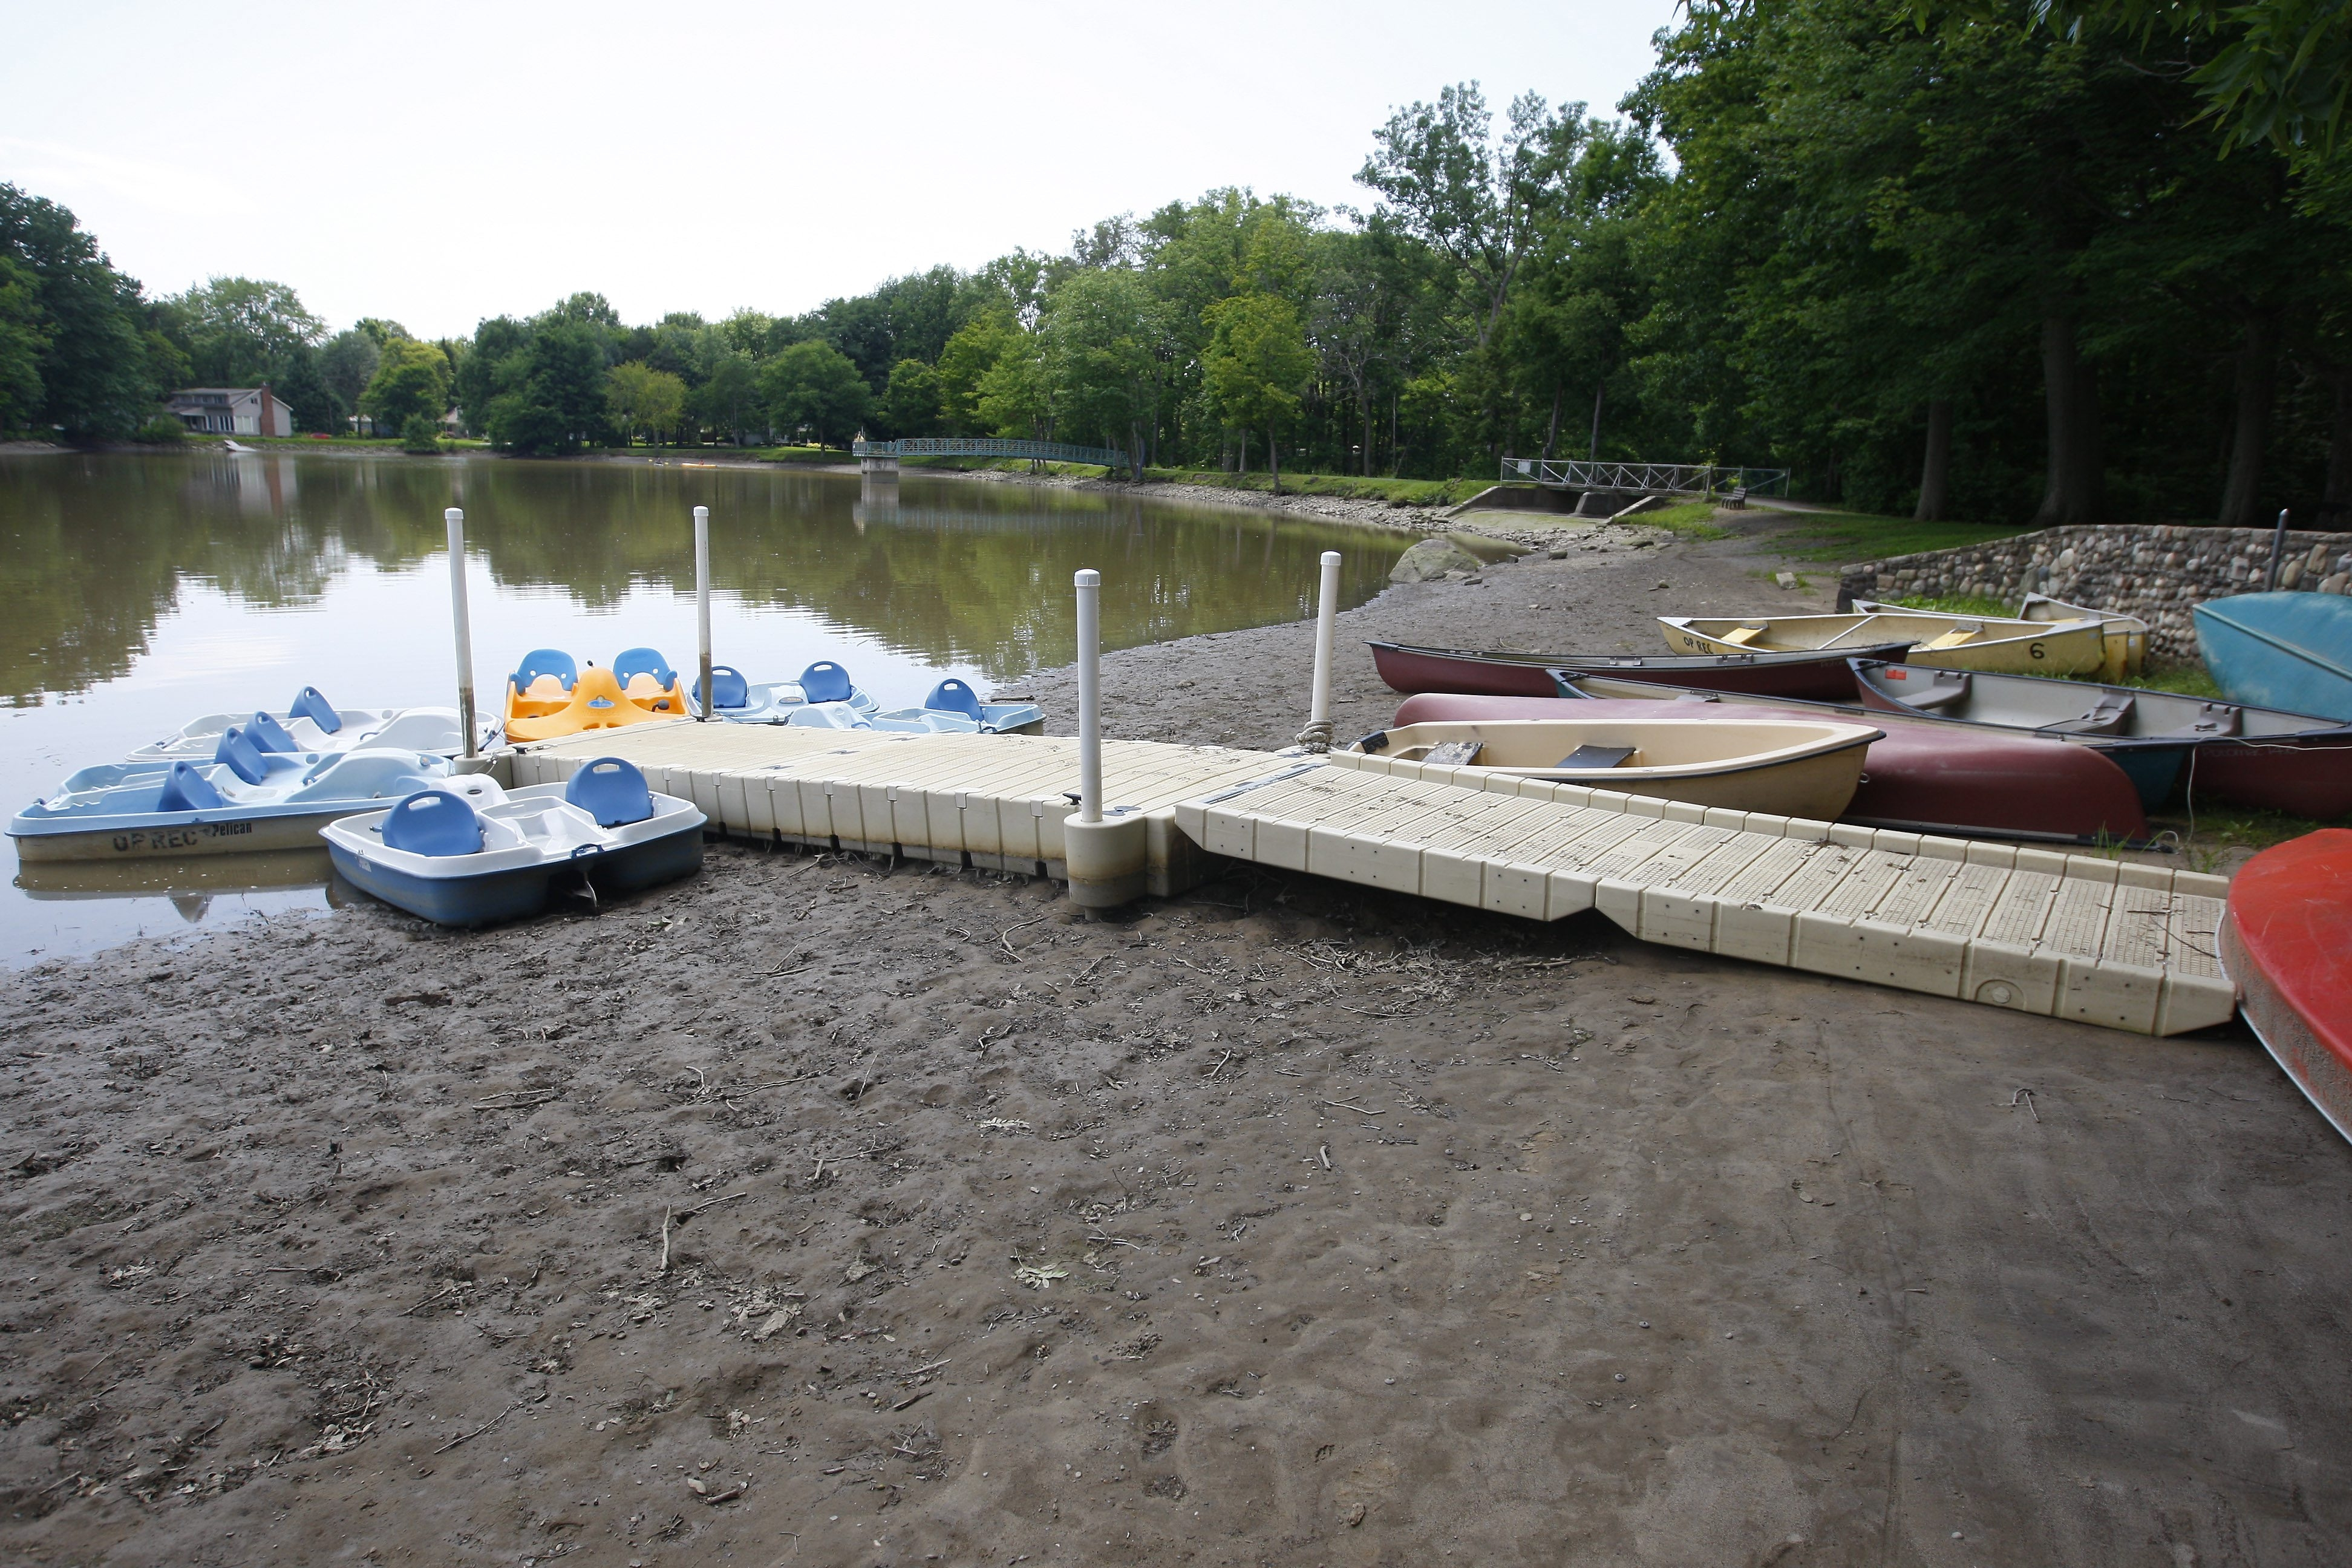 A dock and boats that are usually on the water rest on sand at Orchard Park's Green Lake. A dam left open drained more water than expected.